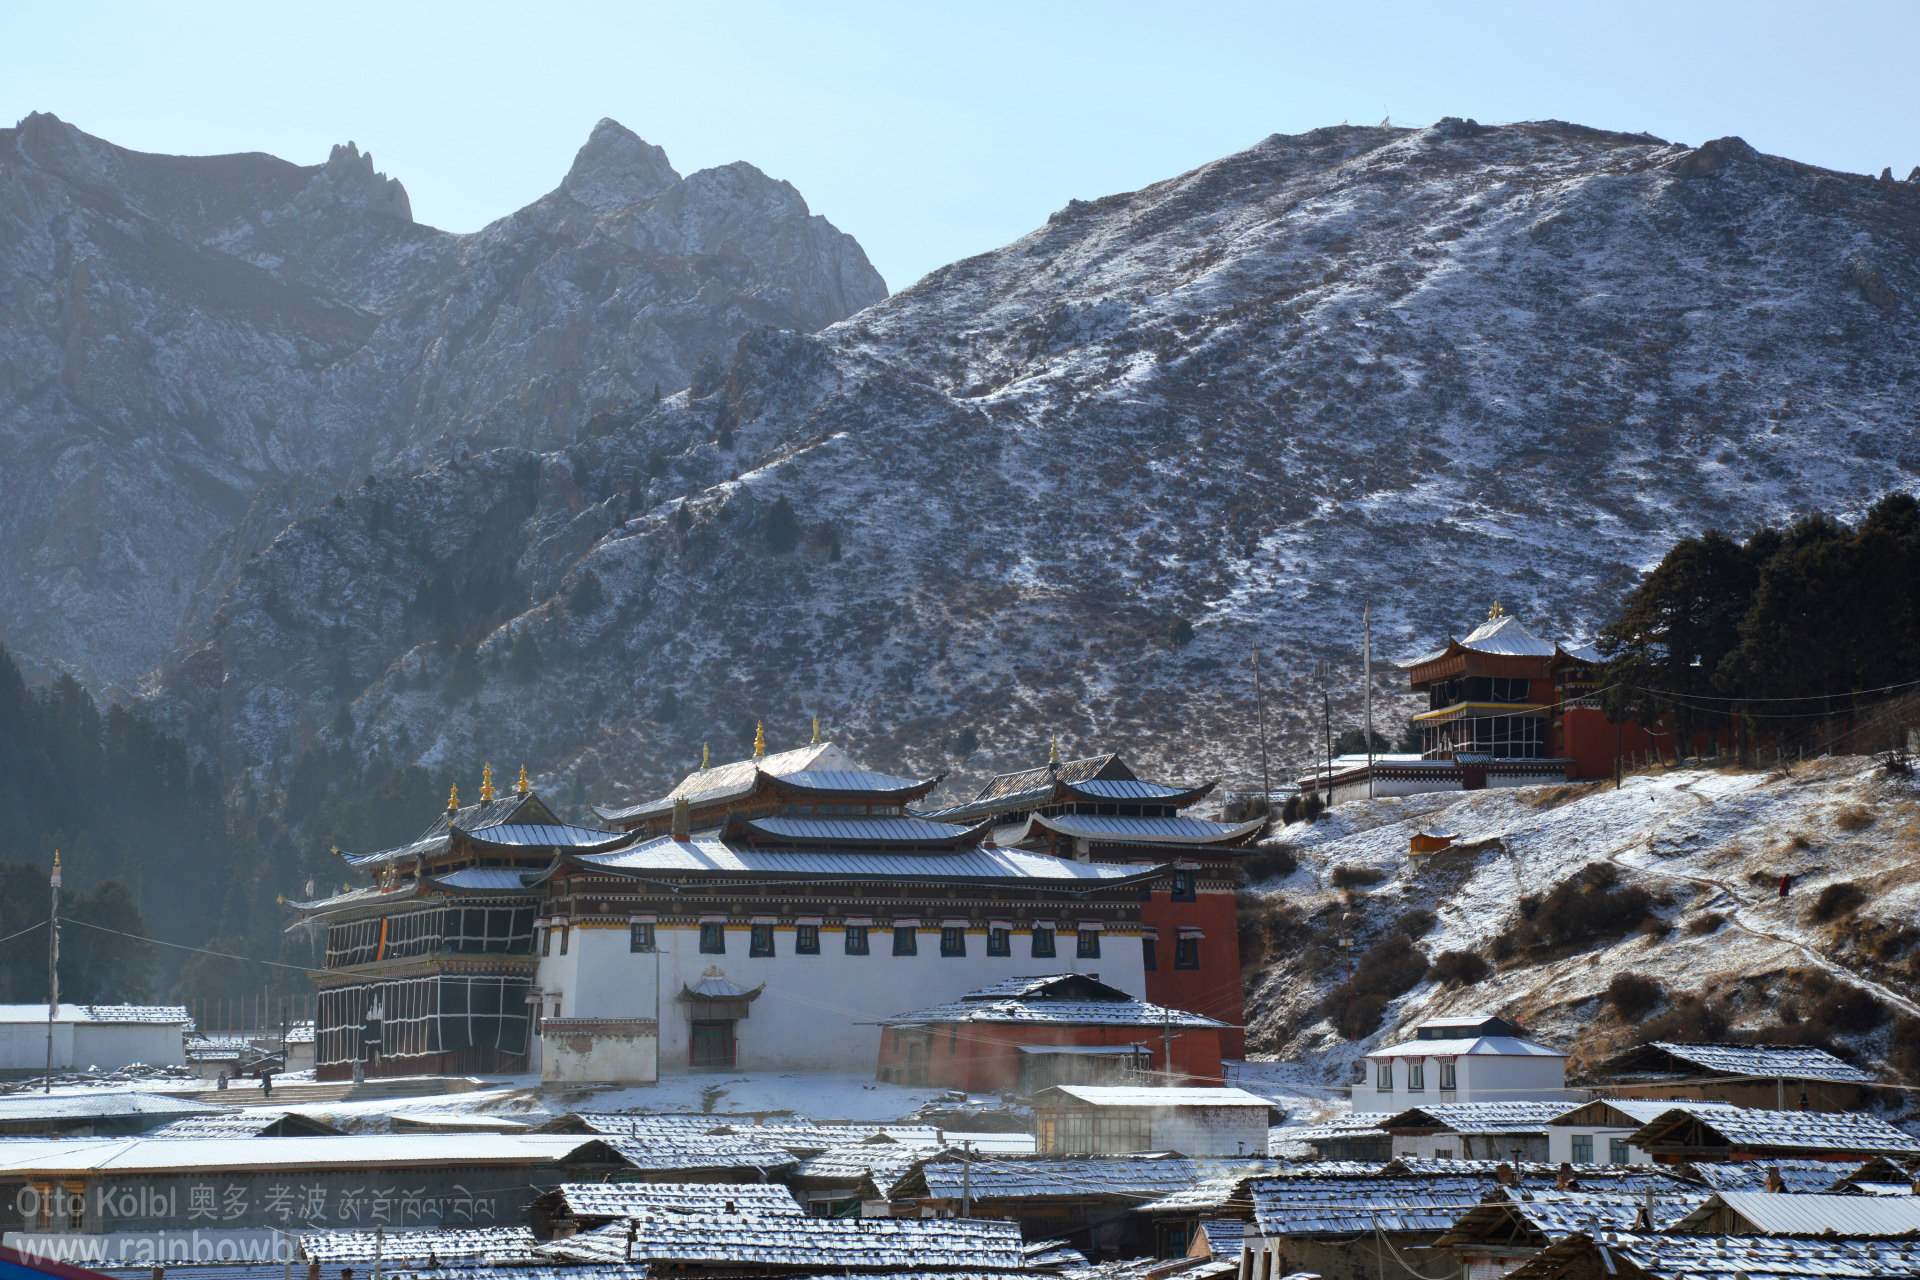 The monasteries also get a thin blanket of white snow.